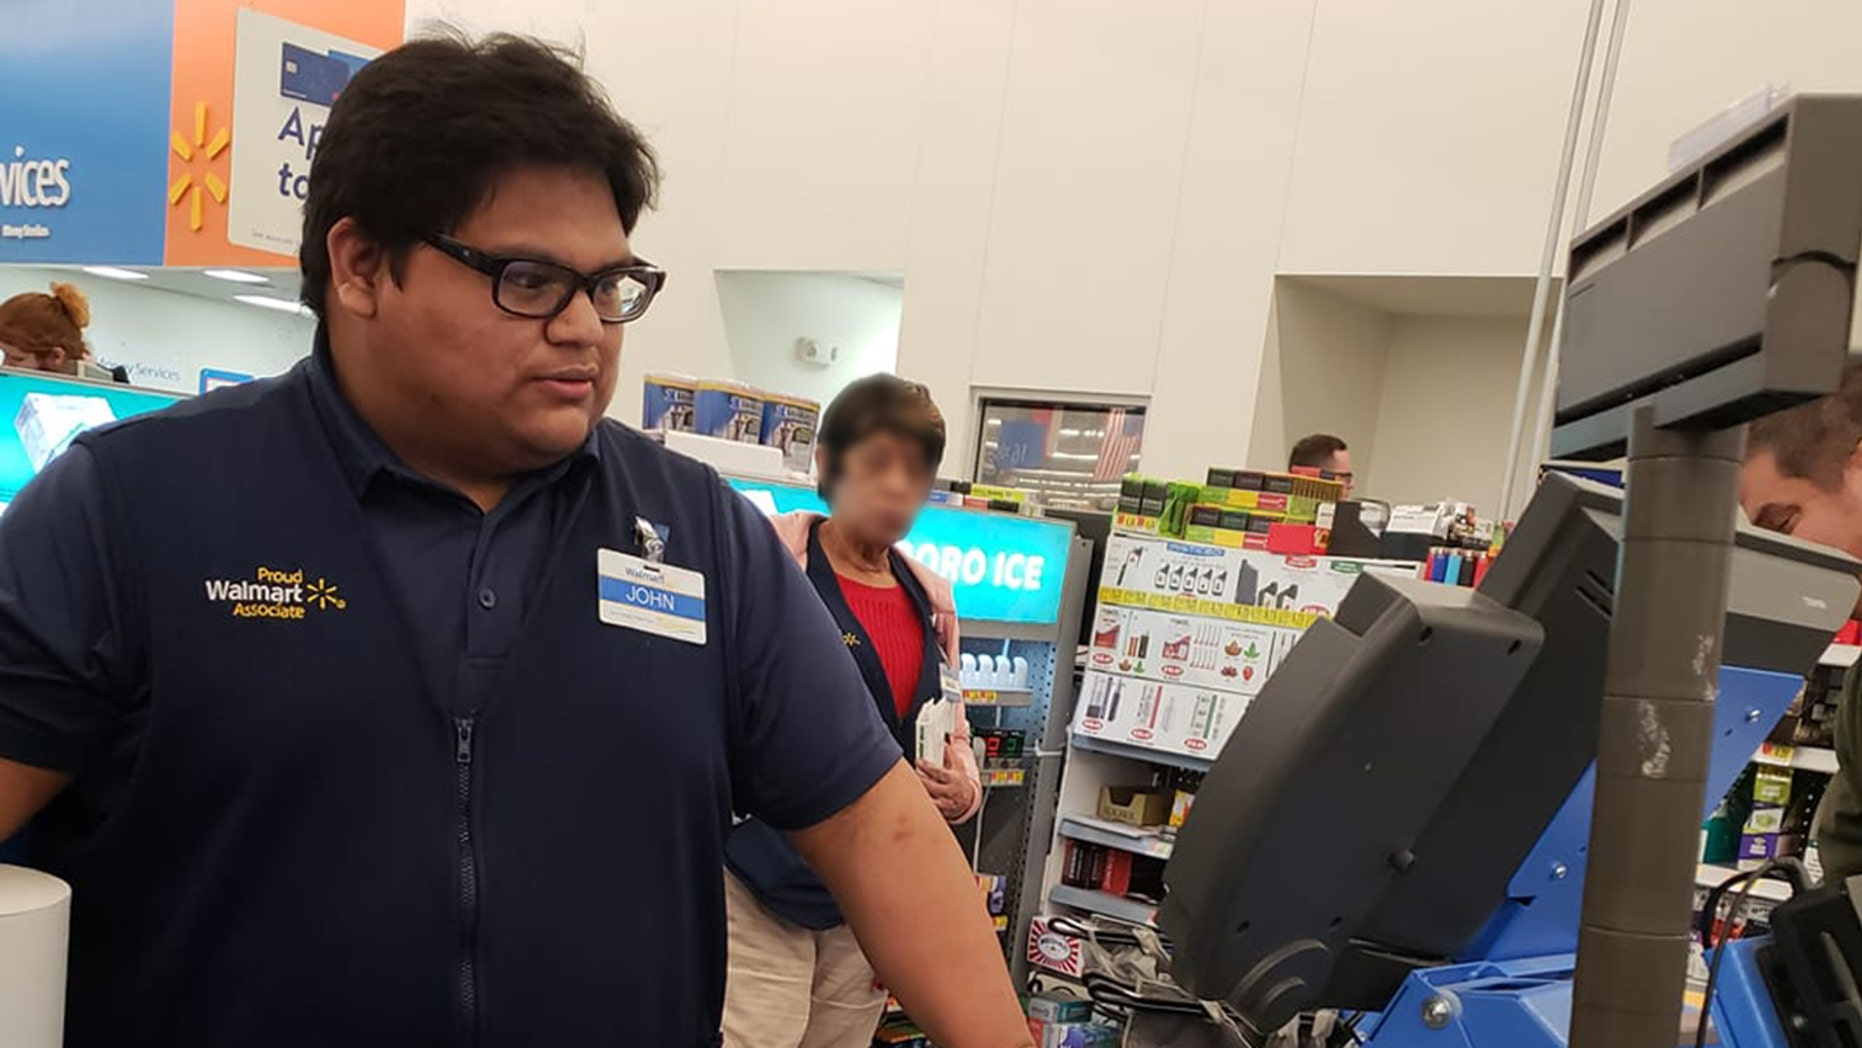 John Lopez Jr., 19, paid for a woman's groceries before Christmas because he felt like God told him to do so. The Princeton, Texas community paid him back in a big way.